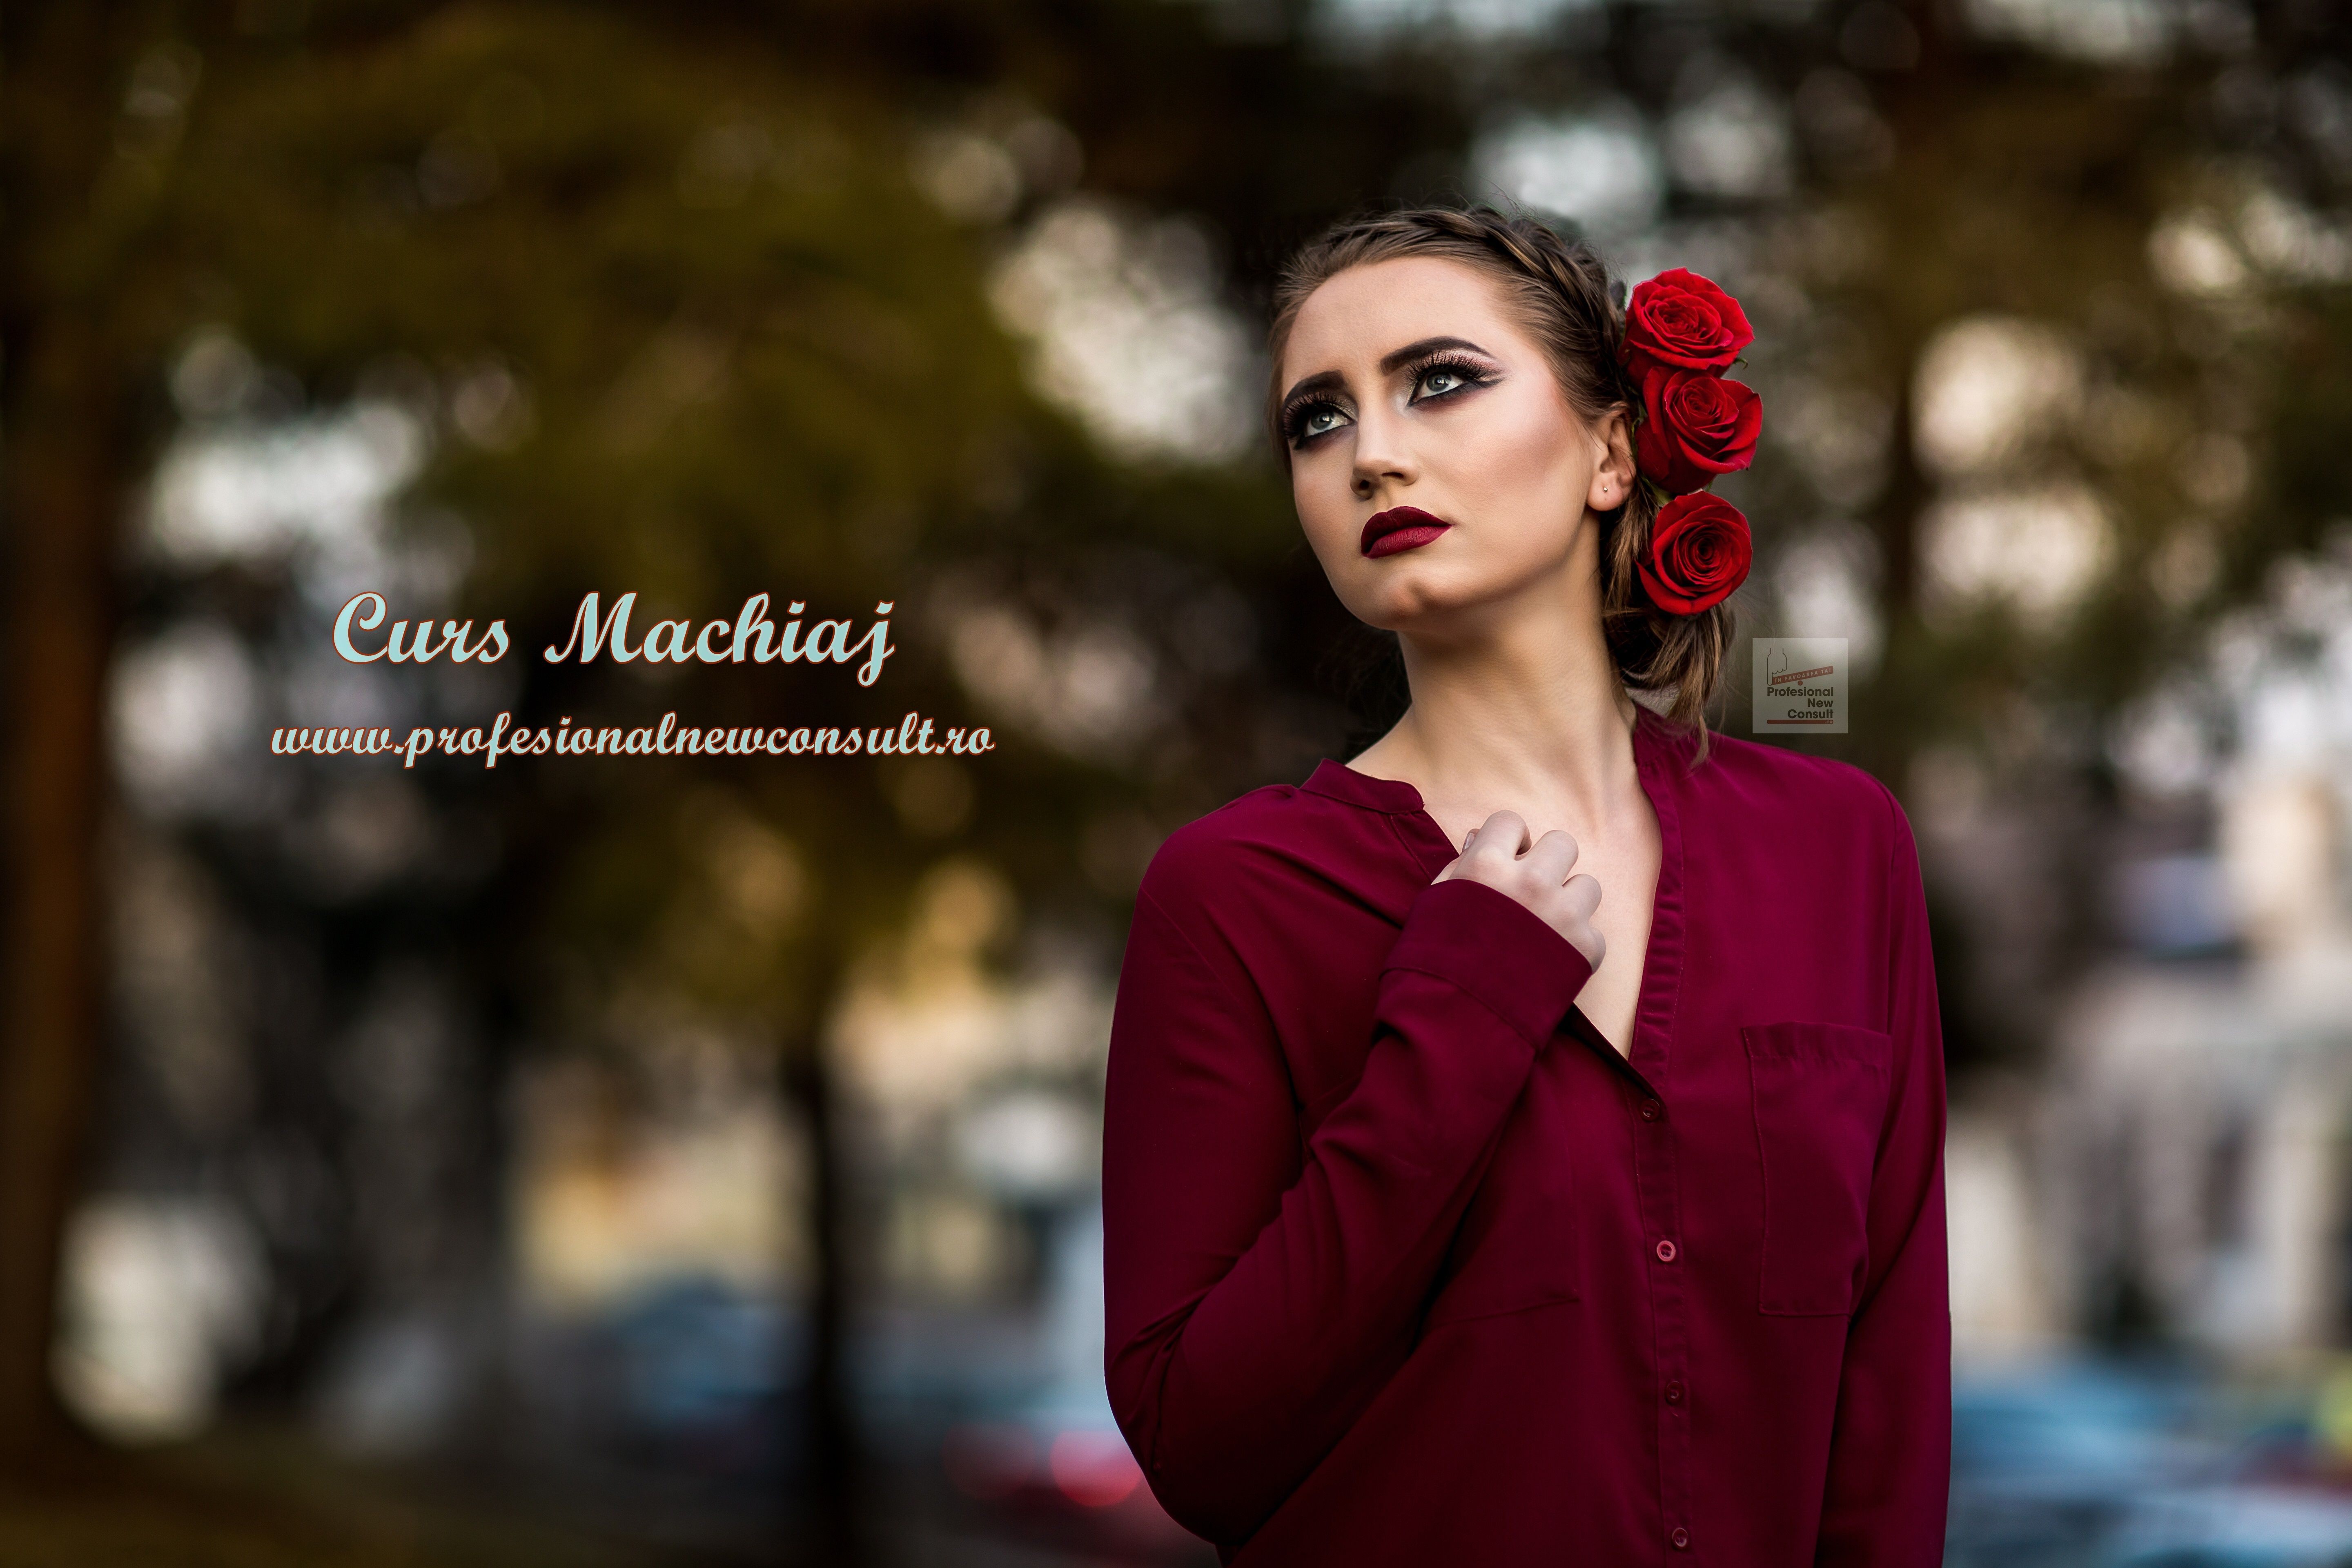 Pin By Profesional New Consult On Curs Machiaj Make Up Pinterest